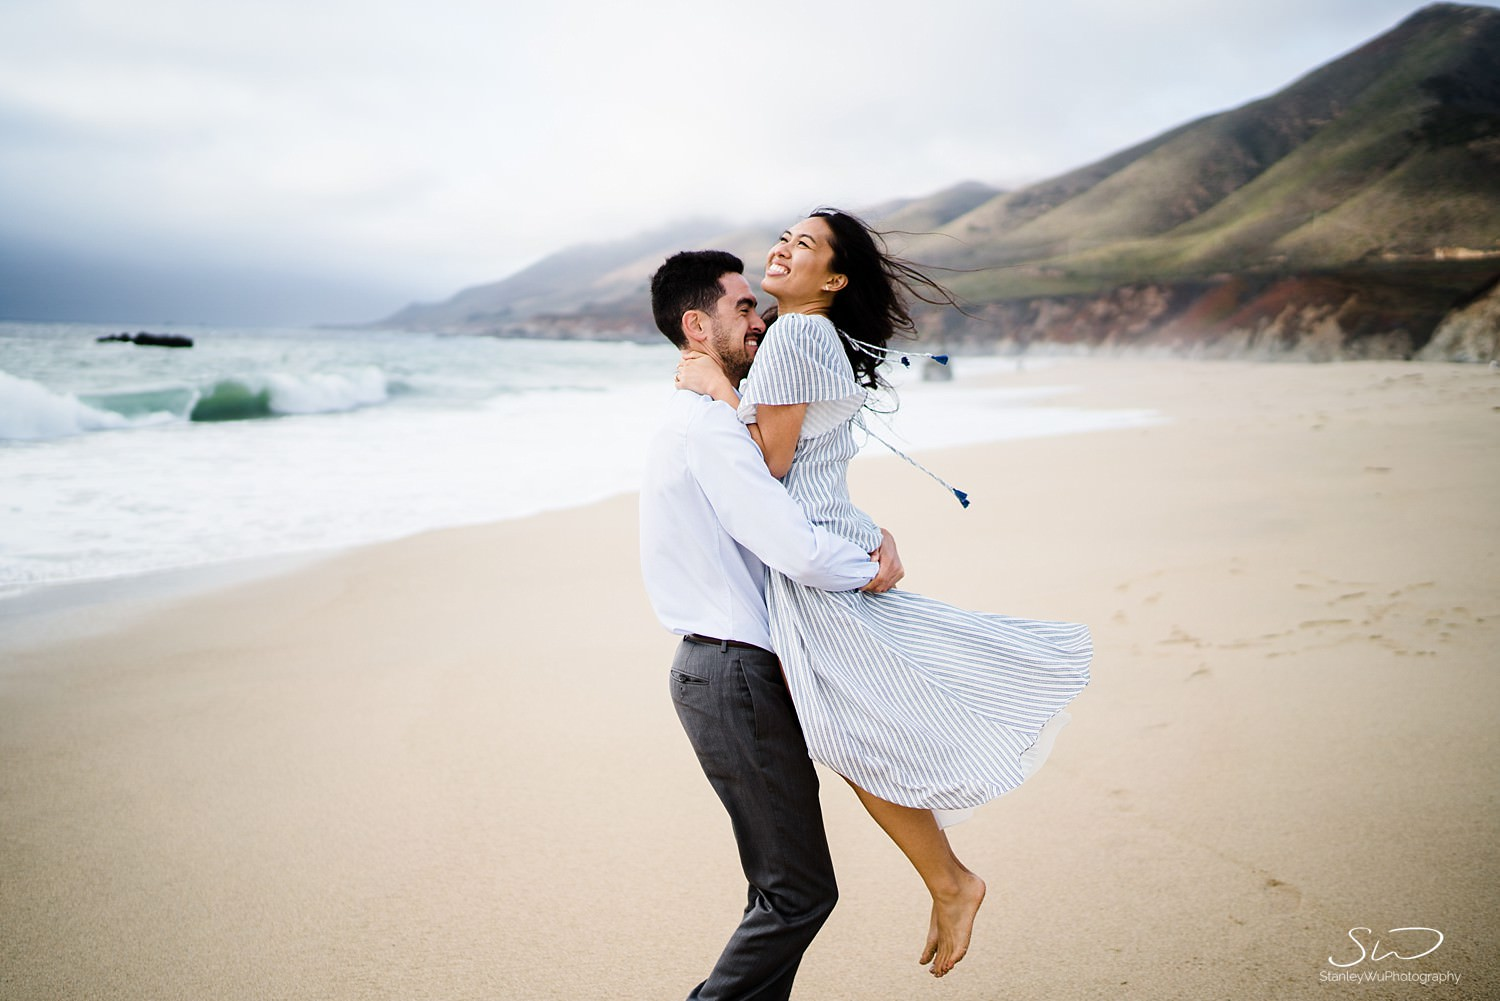 big-sur-travel-adventure-engagement-session_0043.jpg